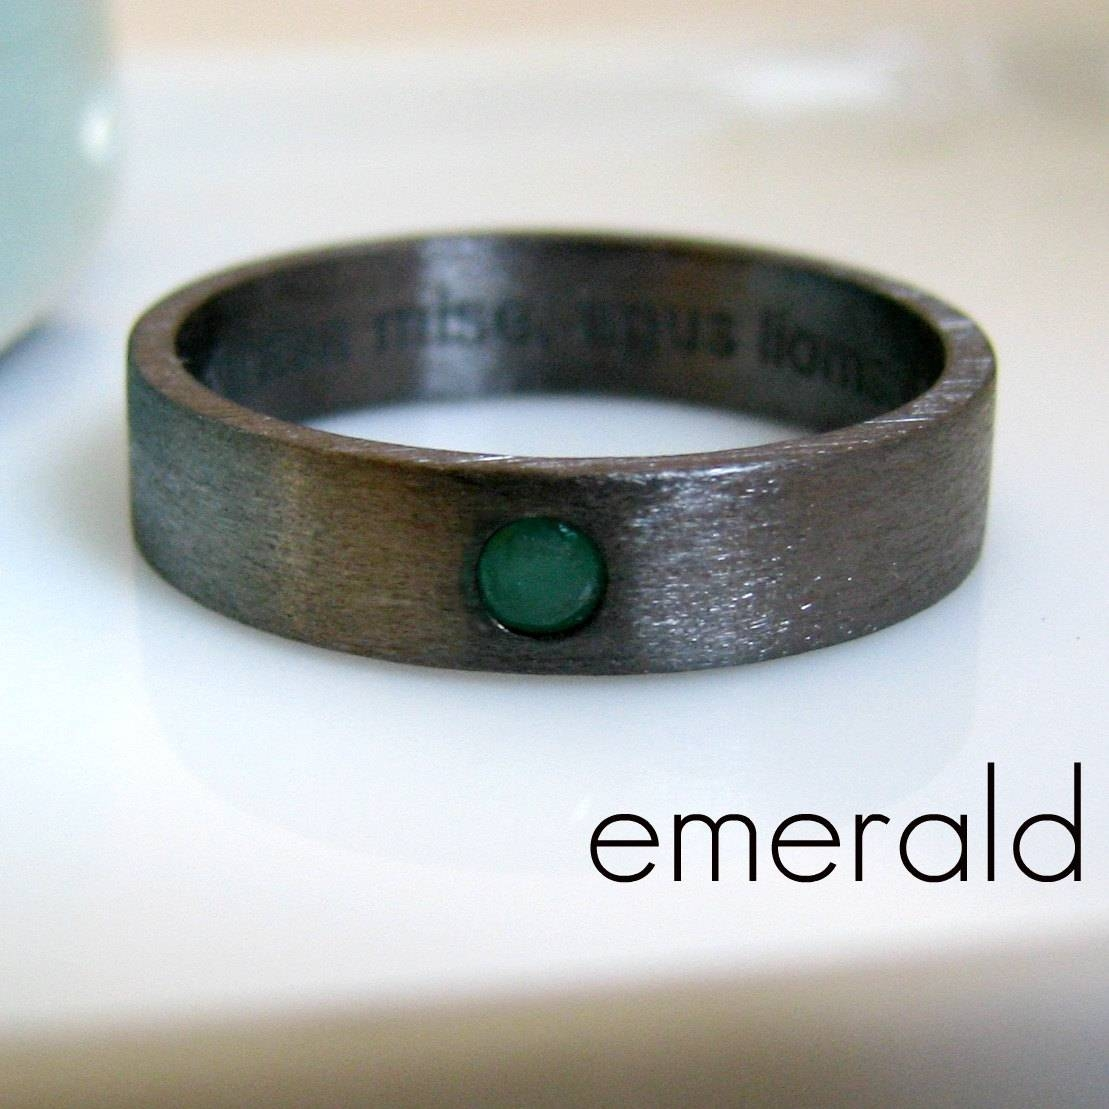 5 6Mm Emerald Wedding Band Black Gold Plated Over 925 With Men's Wedding Bands Emerald (View 3 of 15)